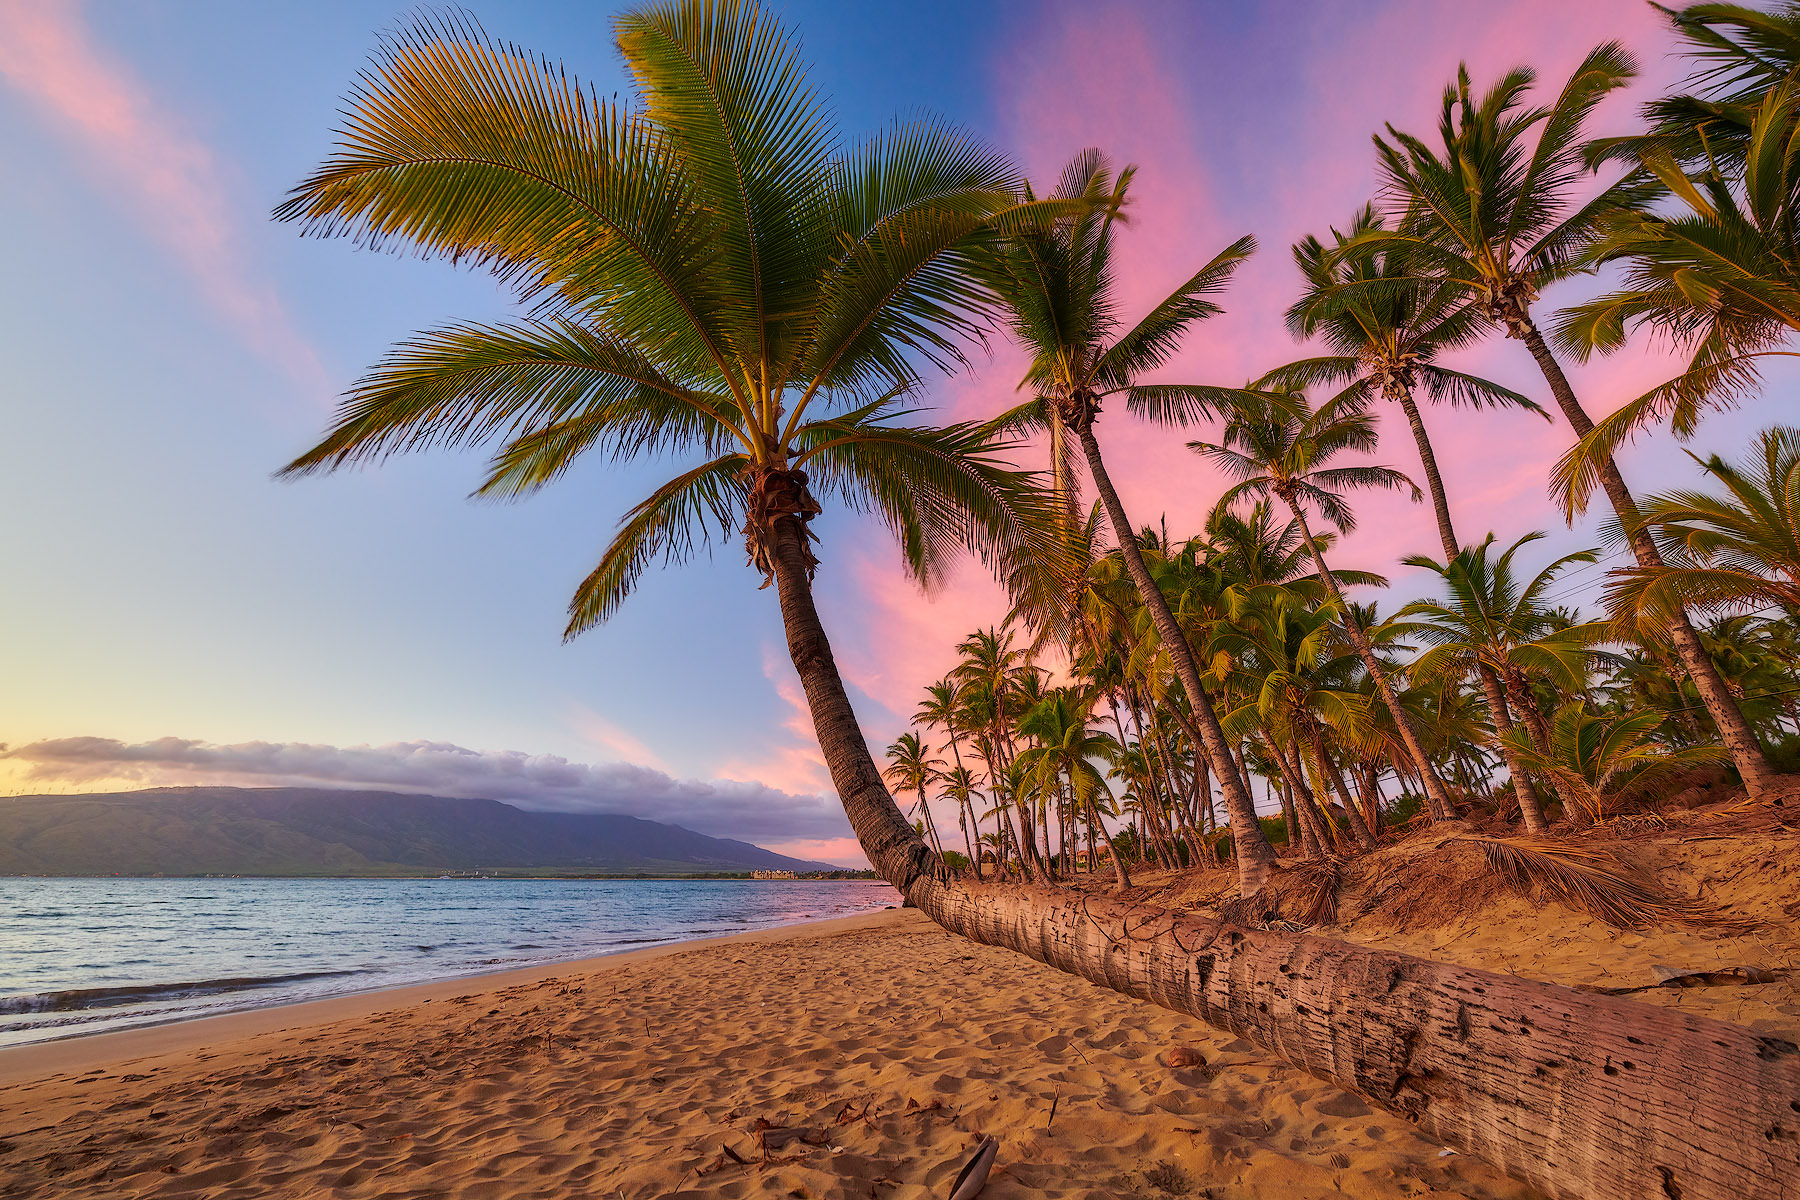 a bent palm tree at sunset in Kihei, Hawaii on the island of Maui.  Beautiful pink and blue colors illuminate the sky.  Hawaii Photography by Andrew Shoemaker